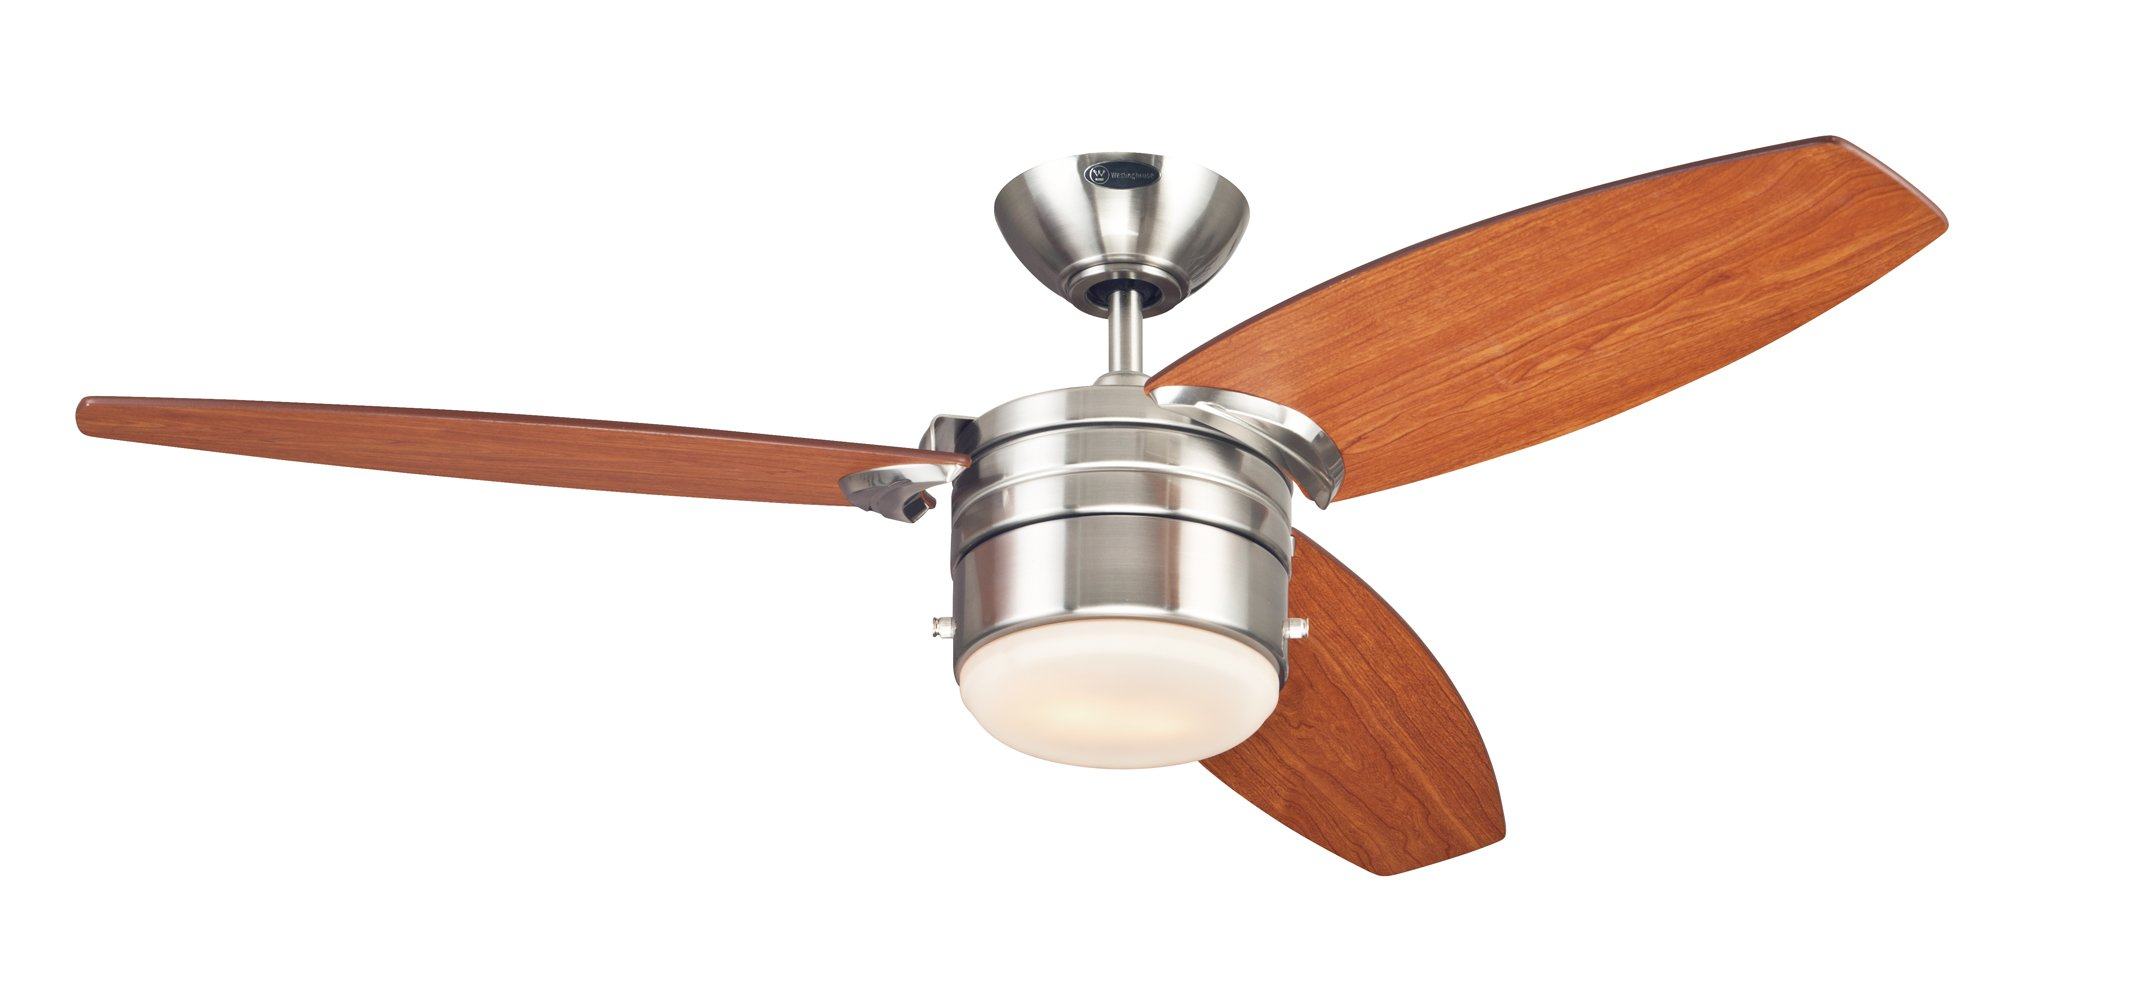 Cheap 32 inch ceiling fan find 32 inch ceiling fan deals on line at westinghouse 7247400 lavada one light reversible three blade indoor ceiling fan 48 mozeypictures Images